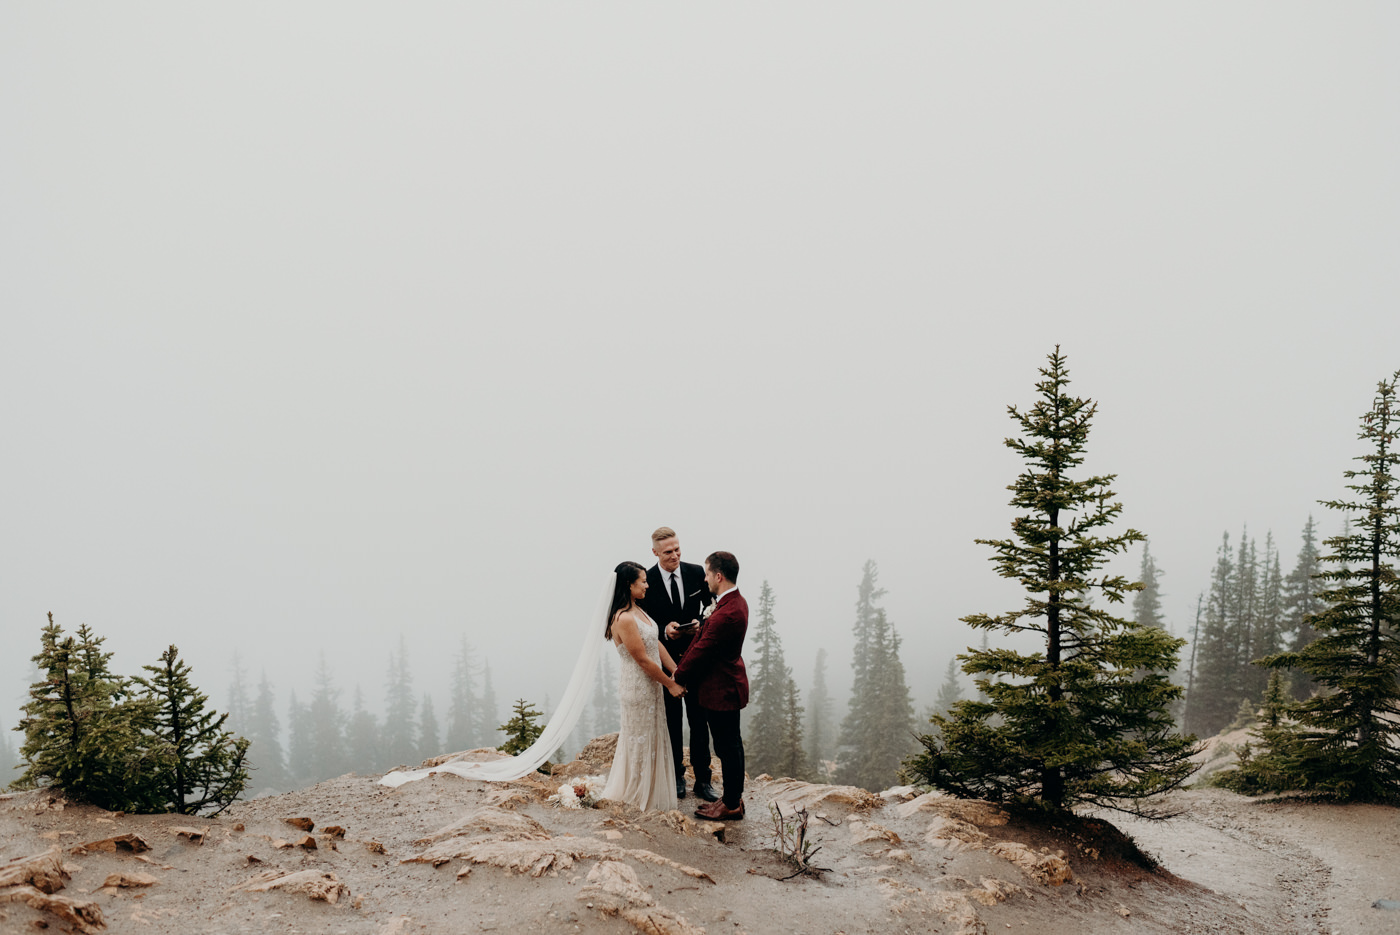 Banff National Park elopement at Peyto Lake